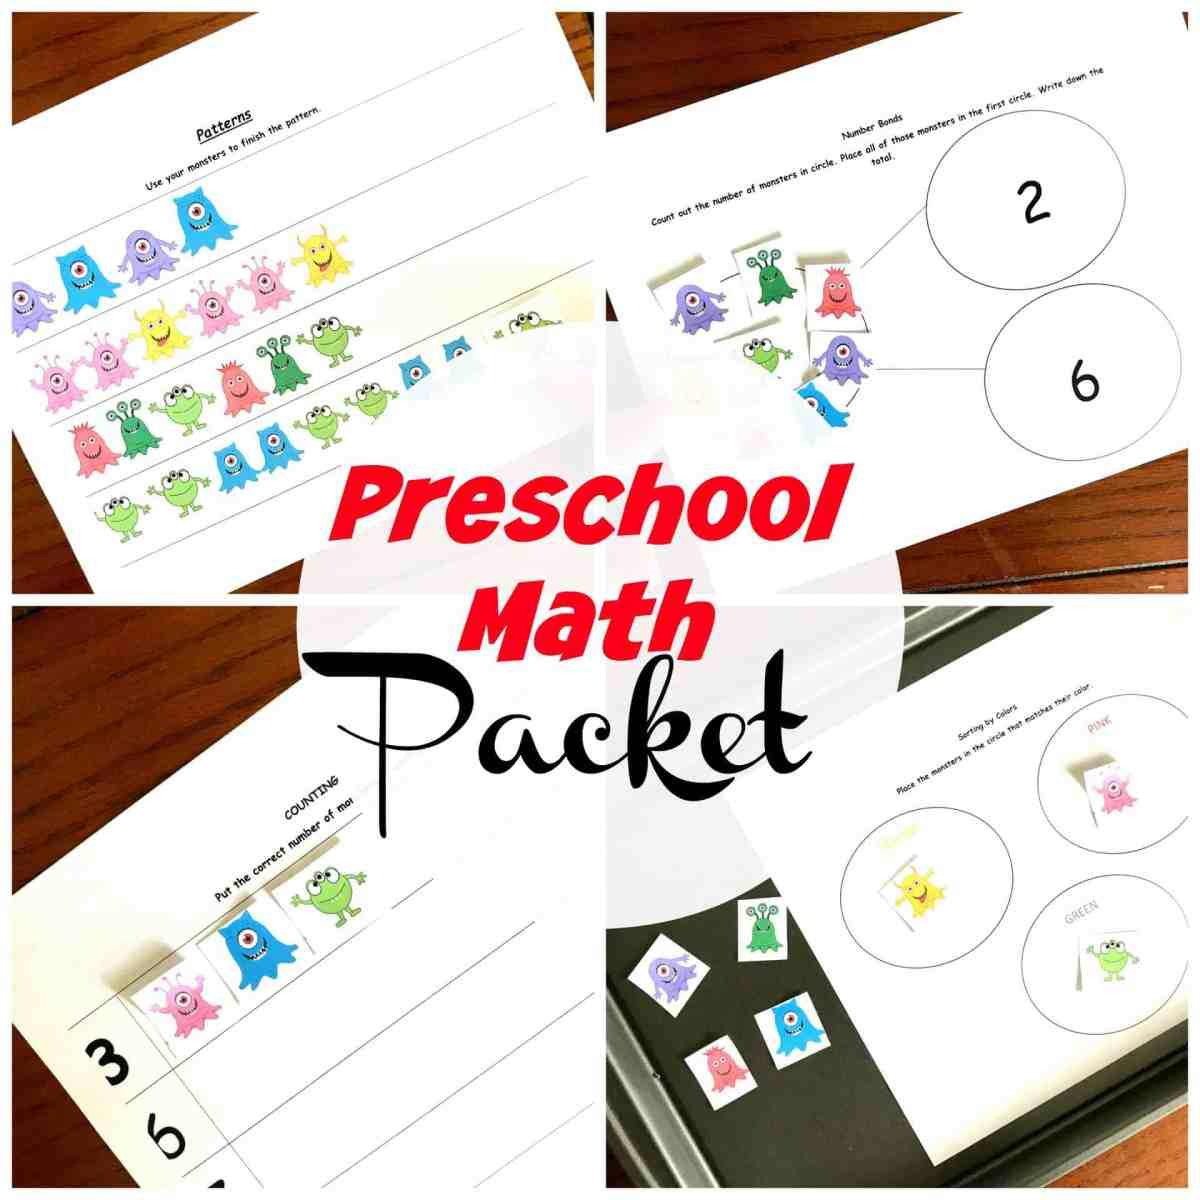 5 Preschool Math Worksheets To Practice Patterns, Sorting, and More